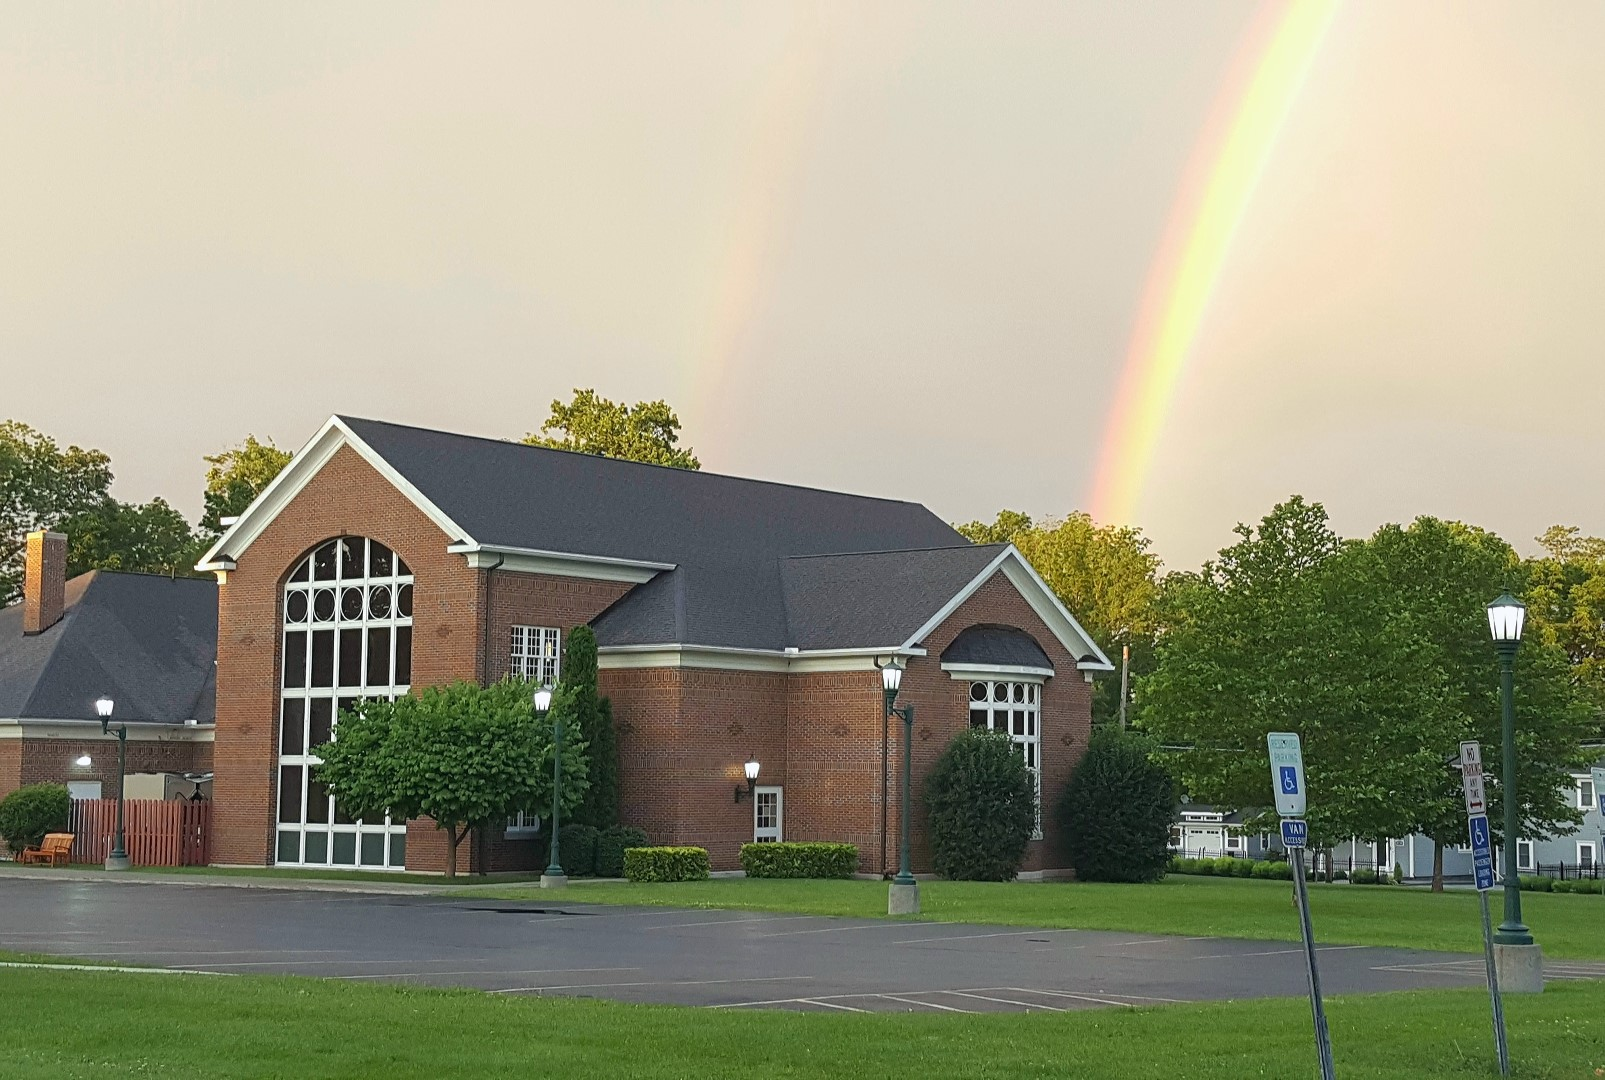 Rainbow over the library (photo)